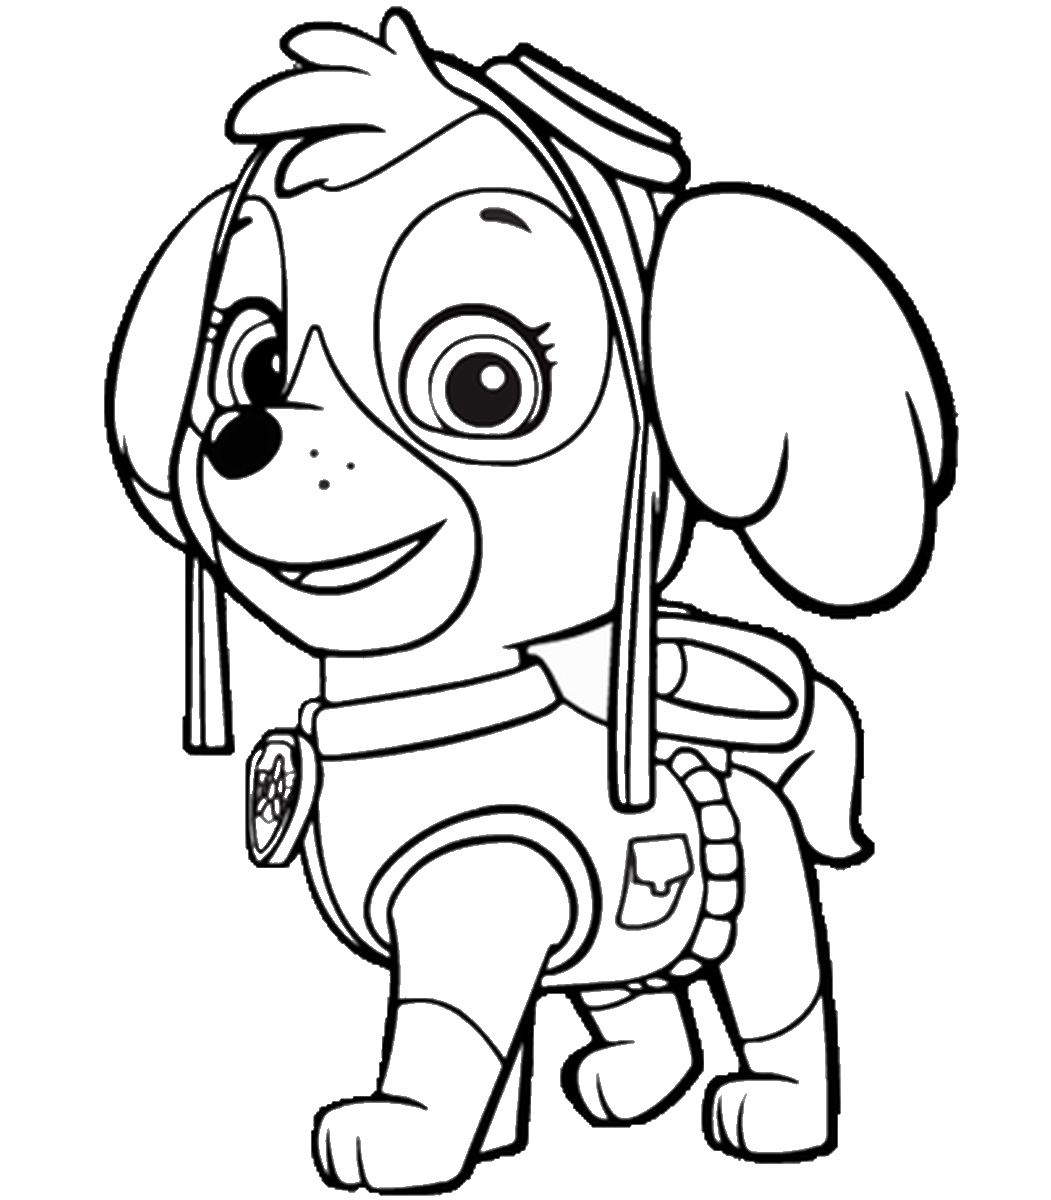 kid outline coloring page paw patrol coloring pages best coloring pages for kids coloring kid page outline